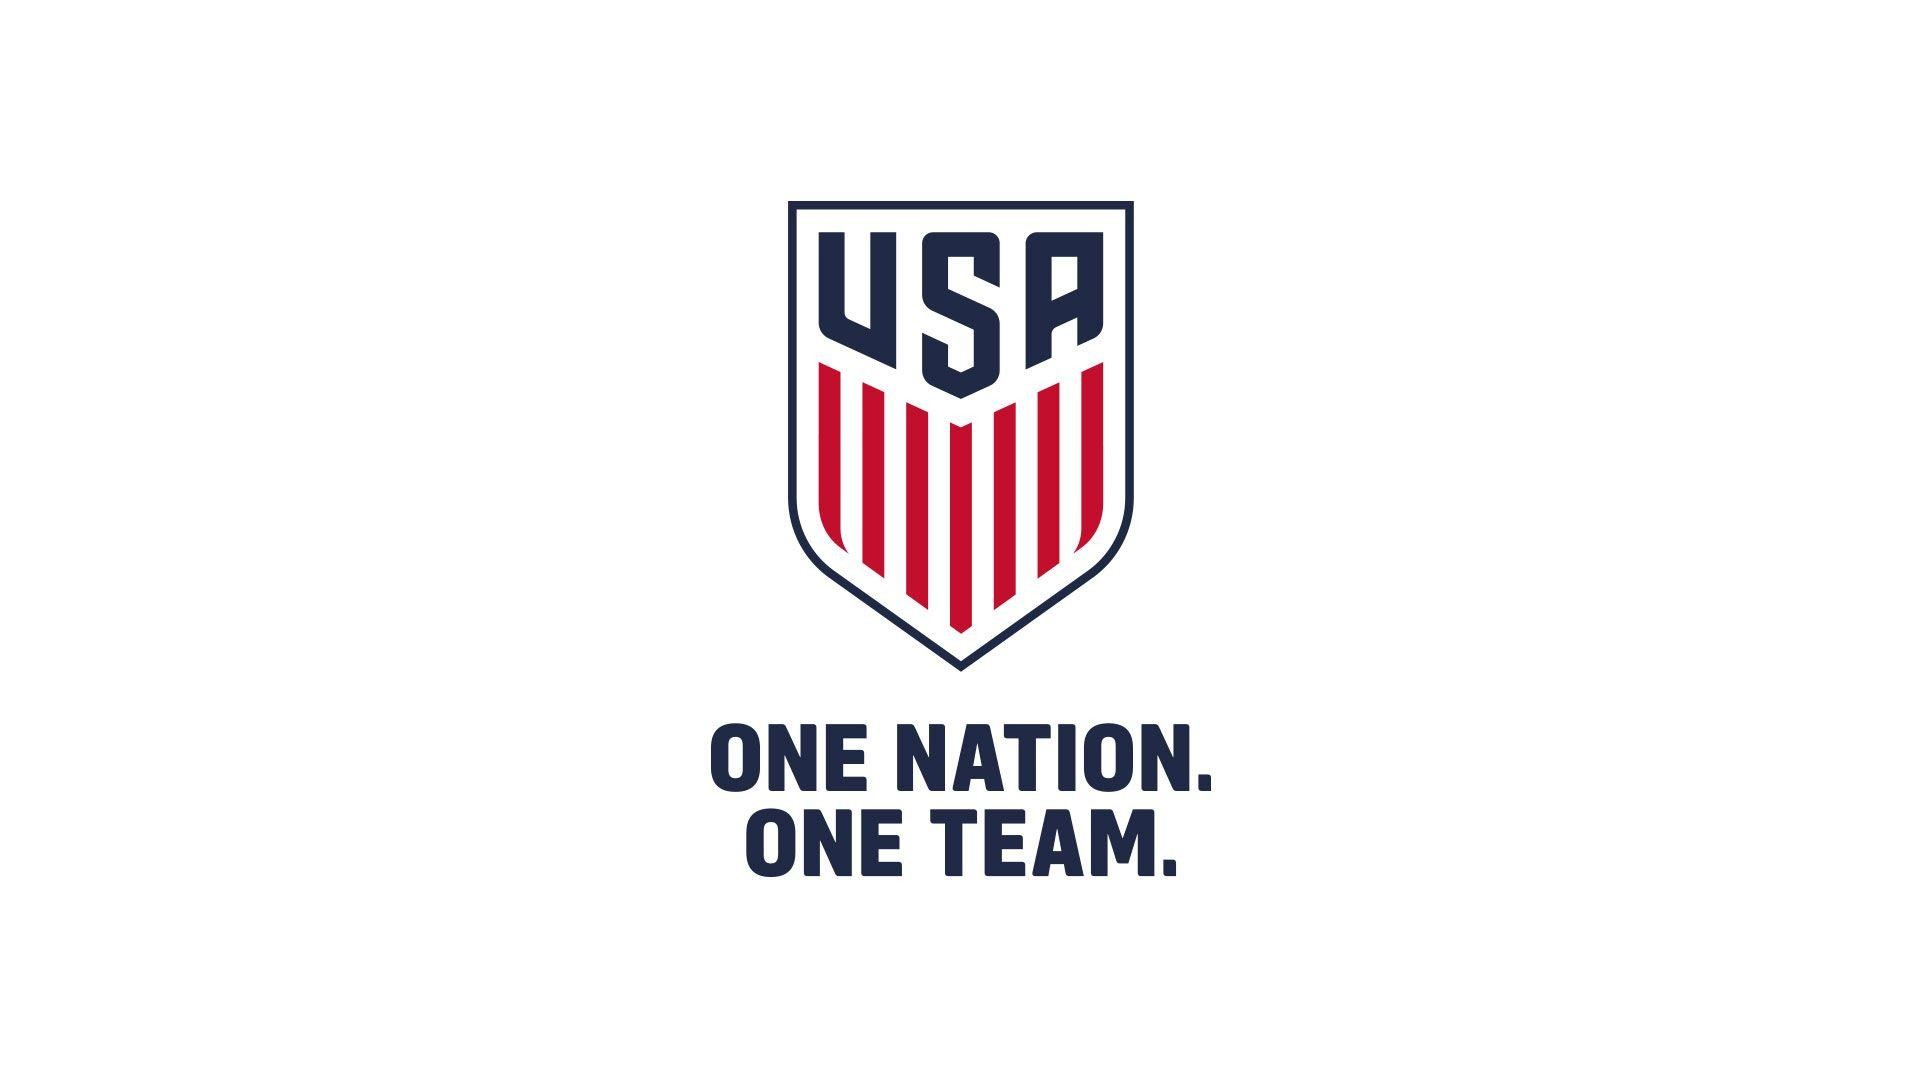 1920x1080 Usa soccer wallpaper hd-hq in High quality and best for desktop .